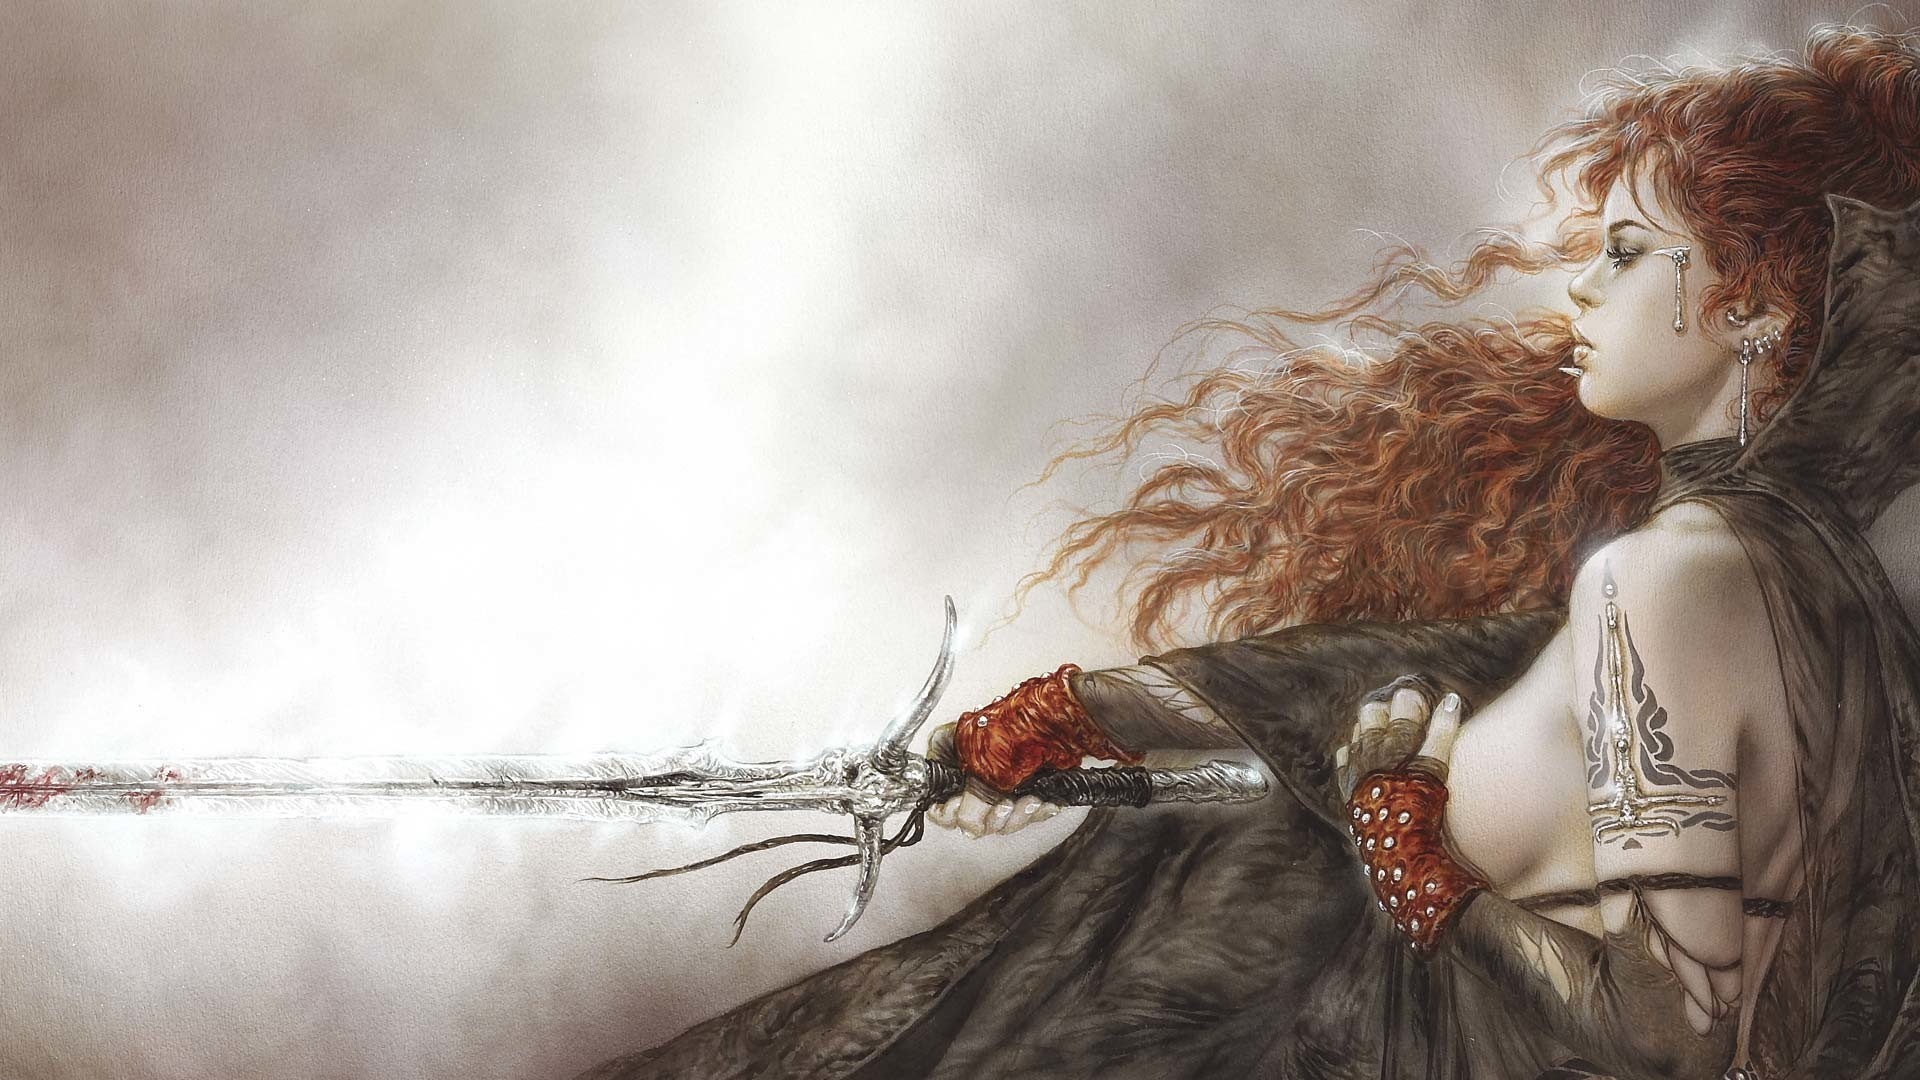 Res: 1920x1080, Luis Royo images Female Fighter HD wallpaper and background photos